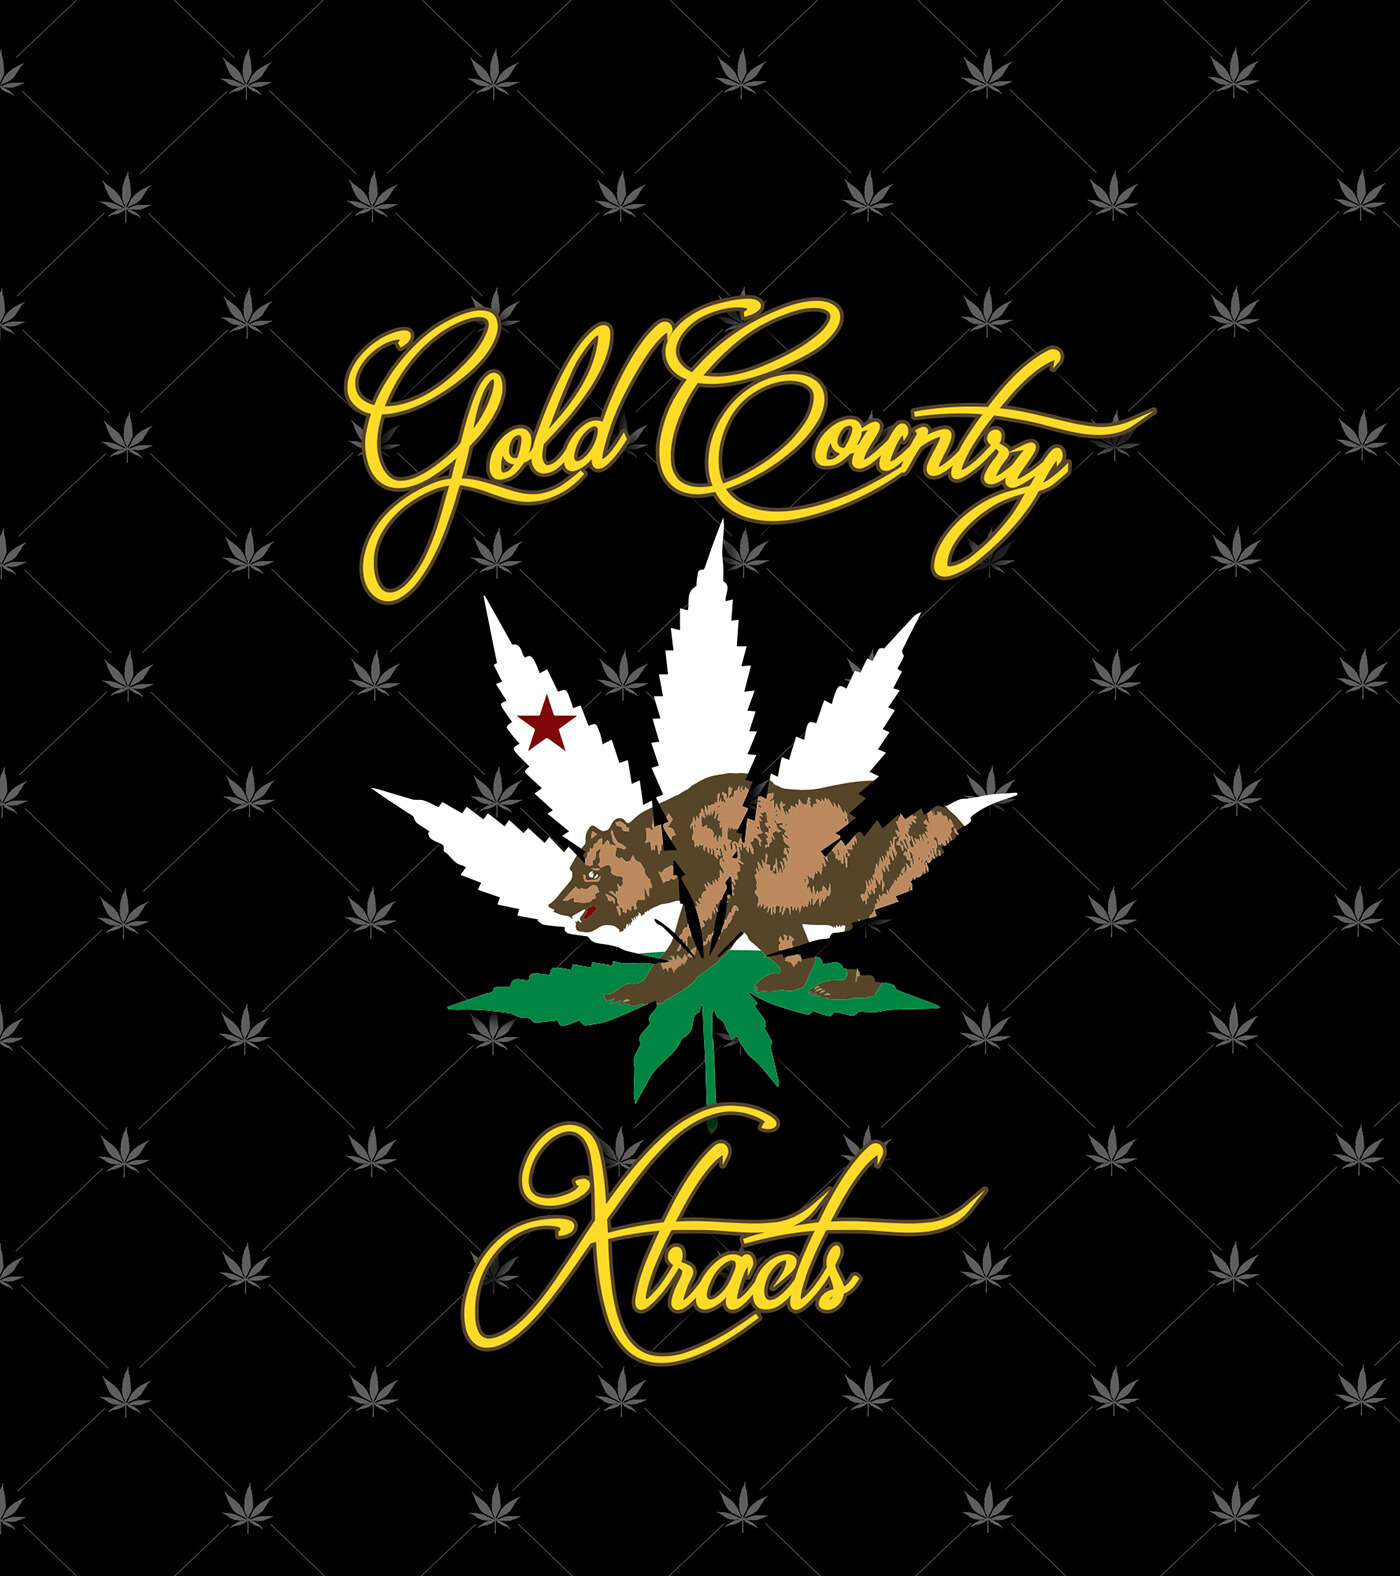 Gold_County_Extracts_Logo